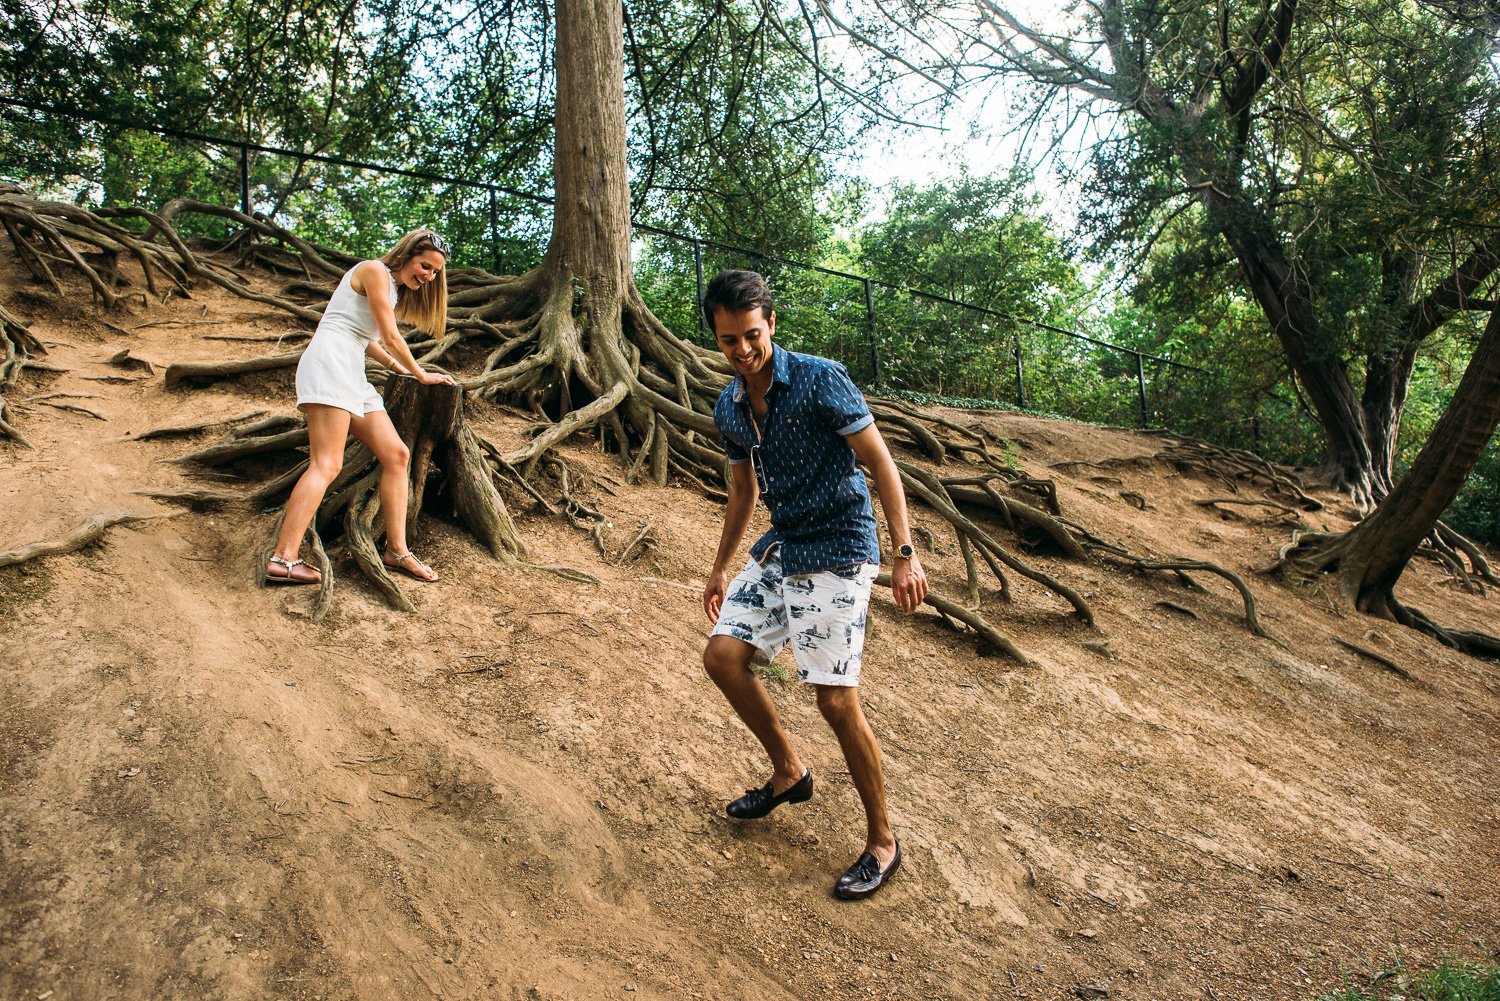 summery-richmond-park-engagement-shoot-55.jpg